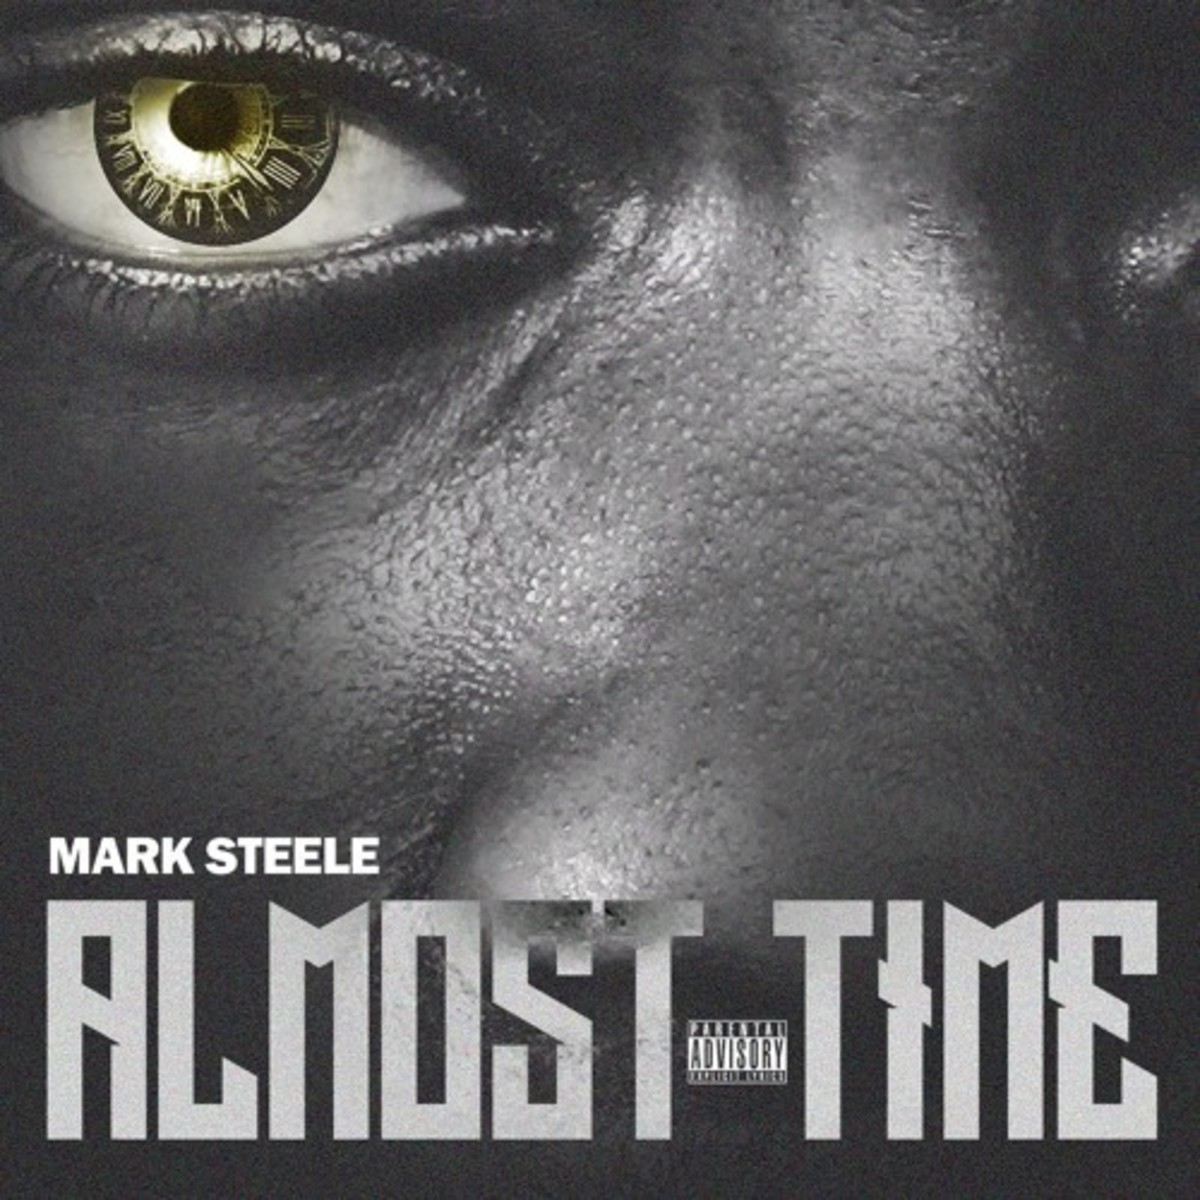 mark-steele-almost-time.jpg